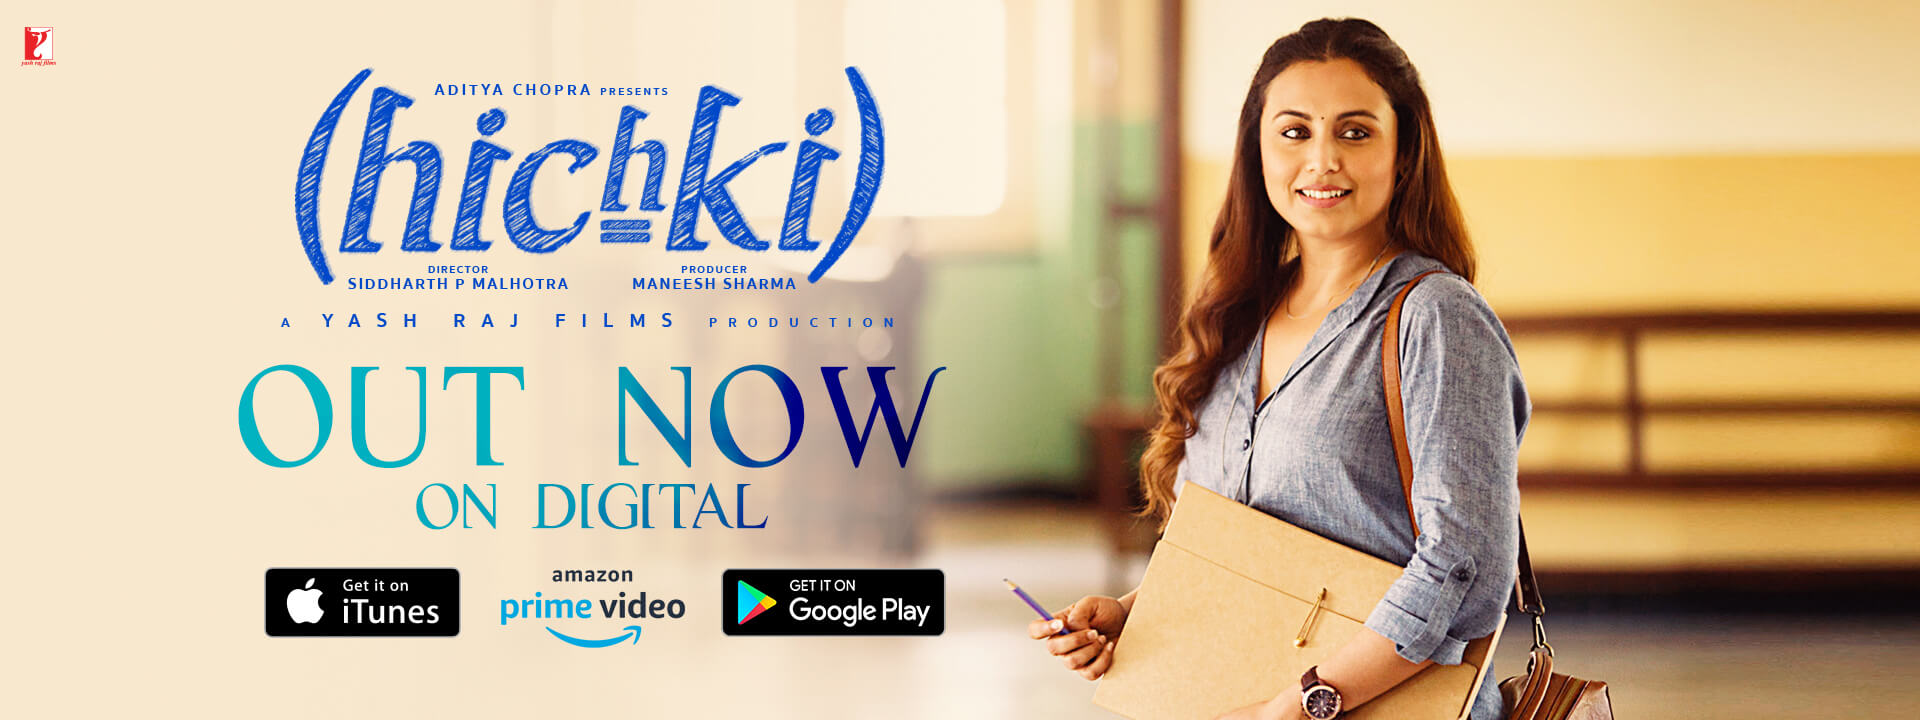 Hichki - Out Now on Digital